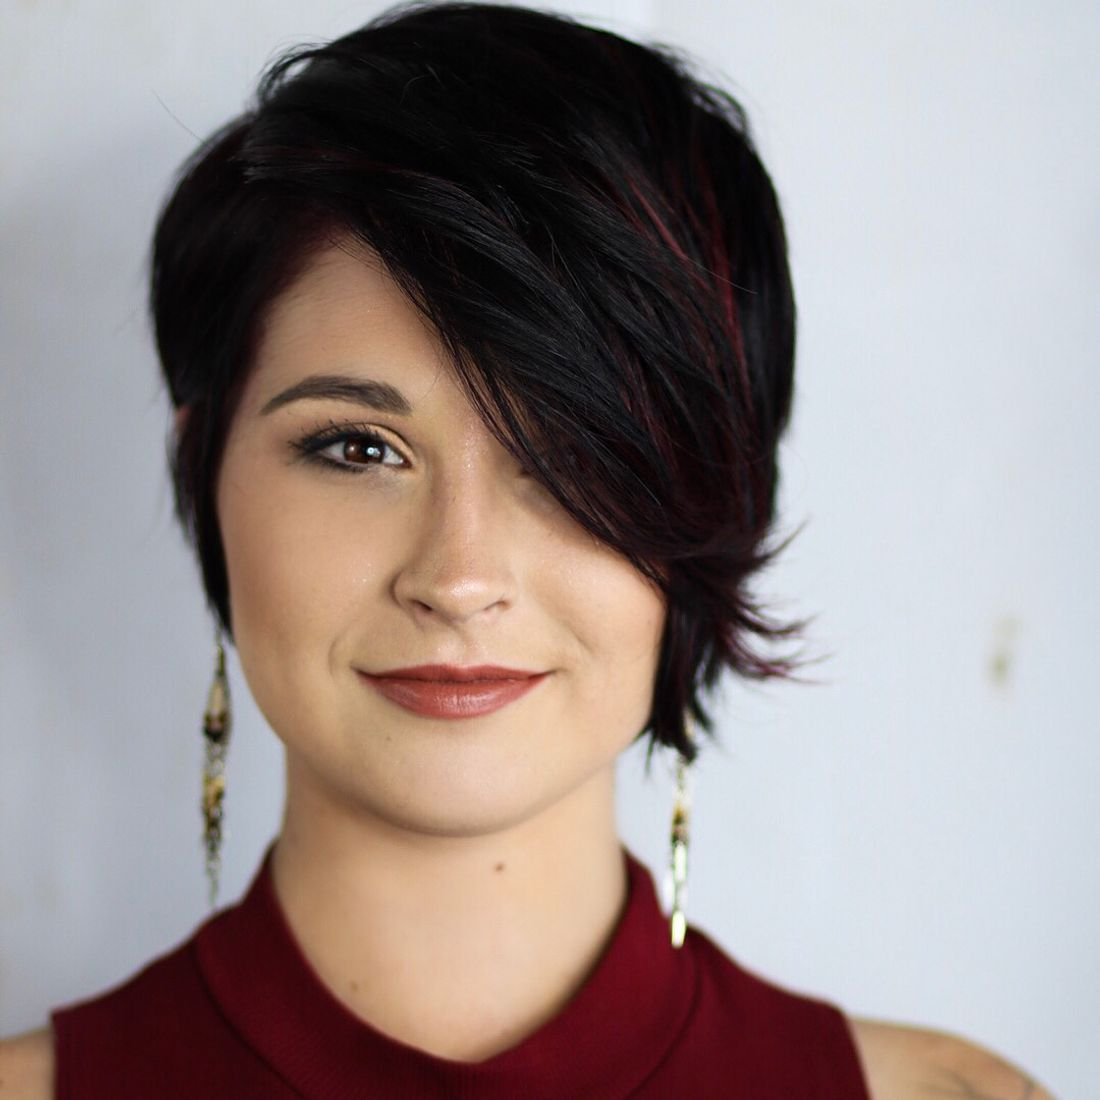 Pixie With Long Side Bangs